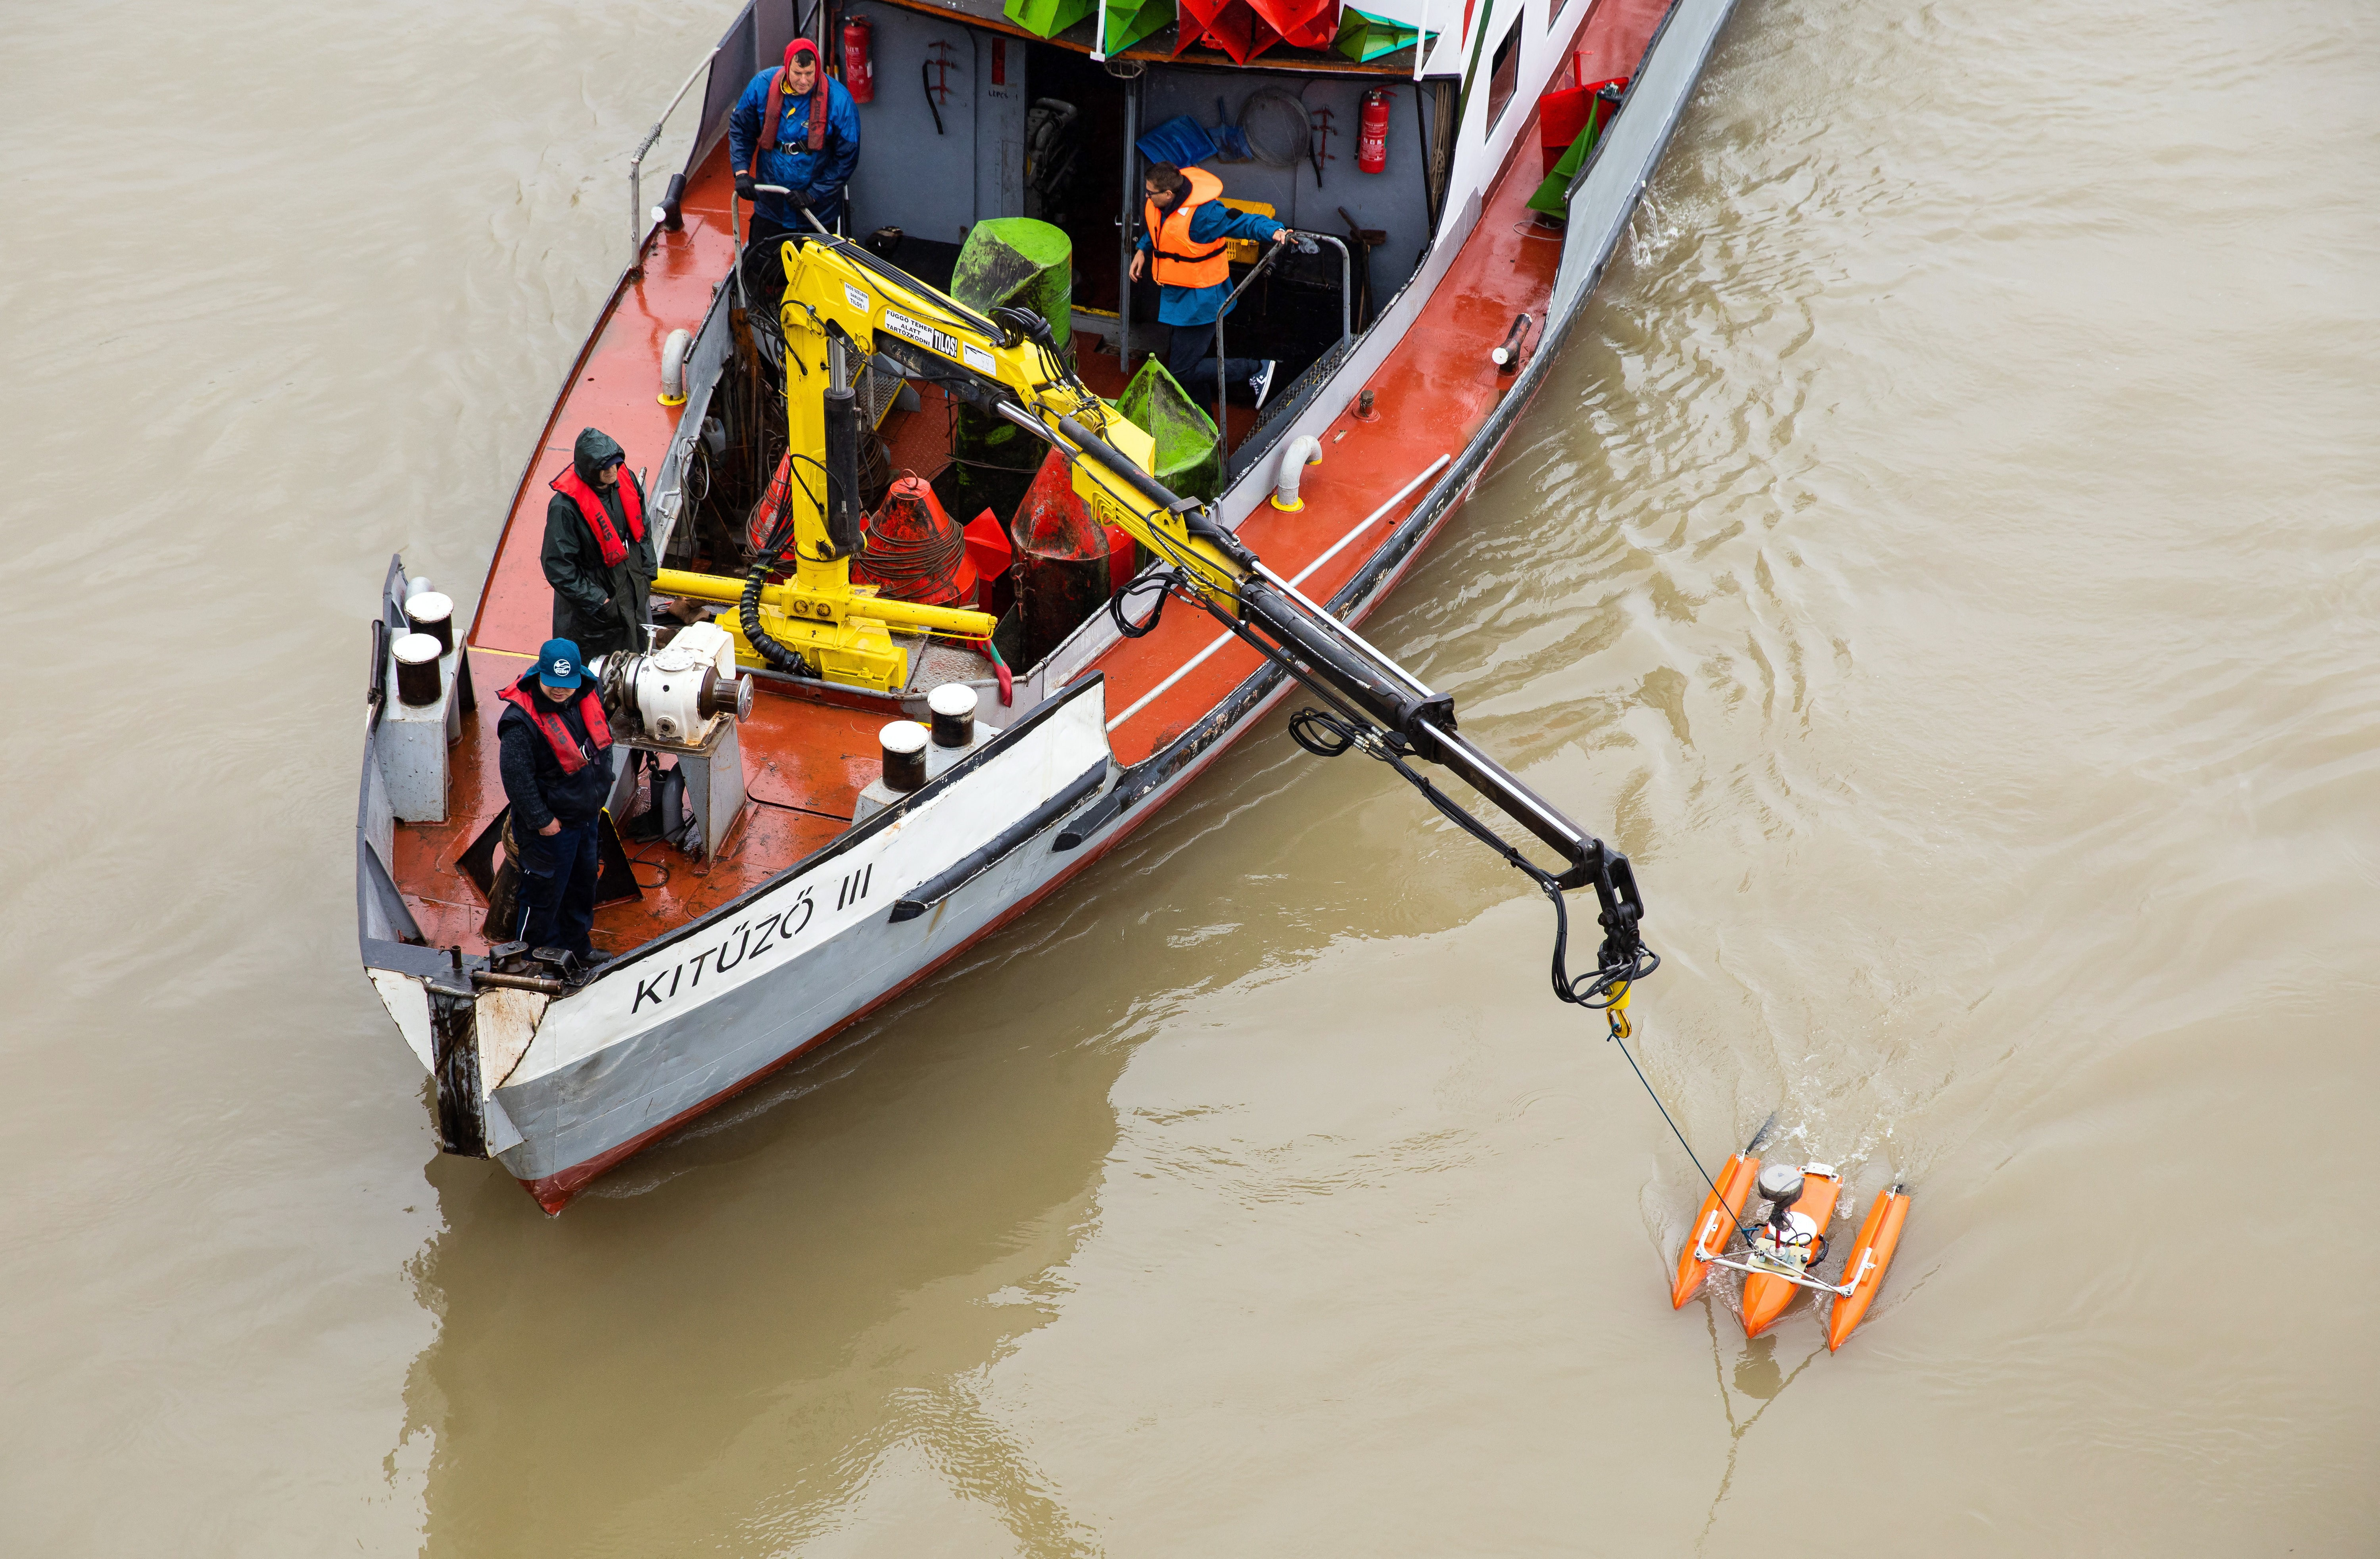 Captain C  Yuriy of 'floating hotel' in Hungarian boat collision